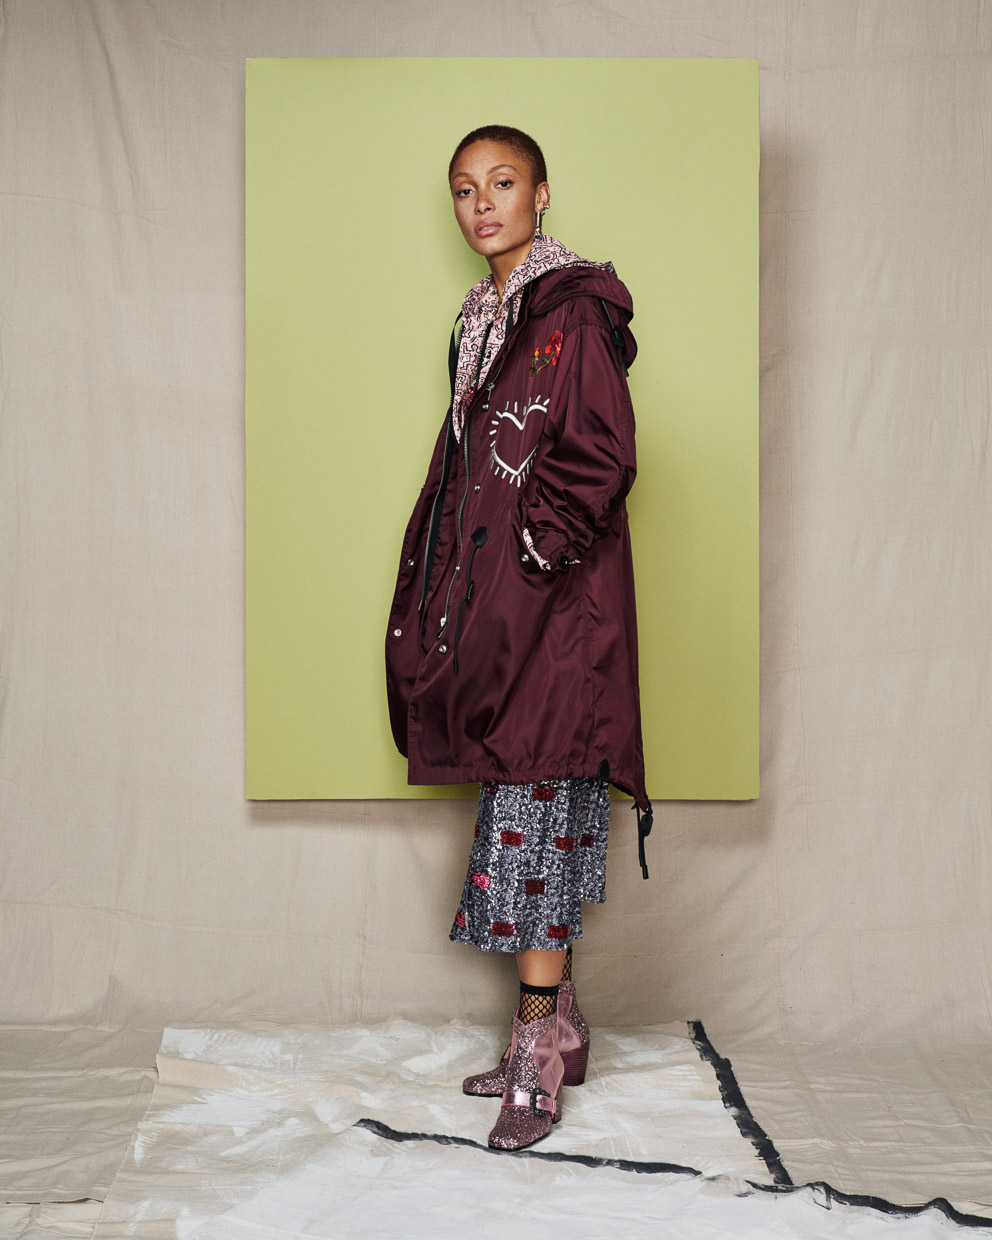 Adwoa Aboah, model. The Times Magazine.